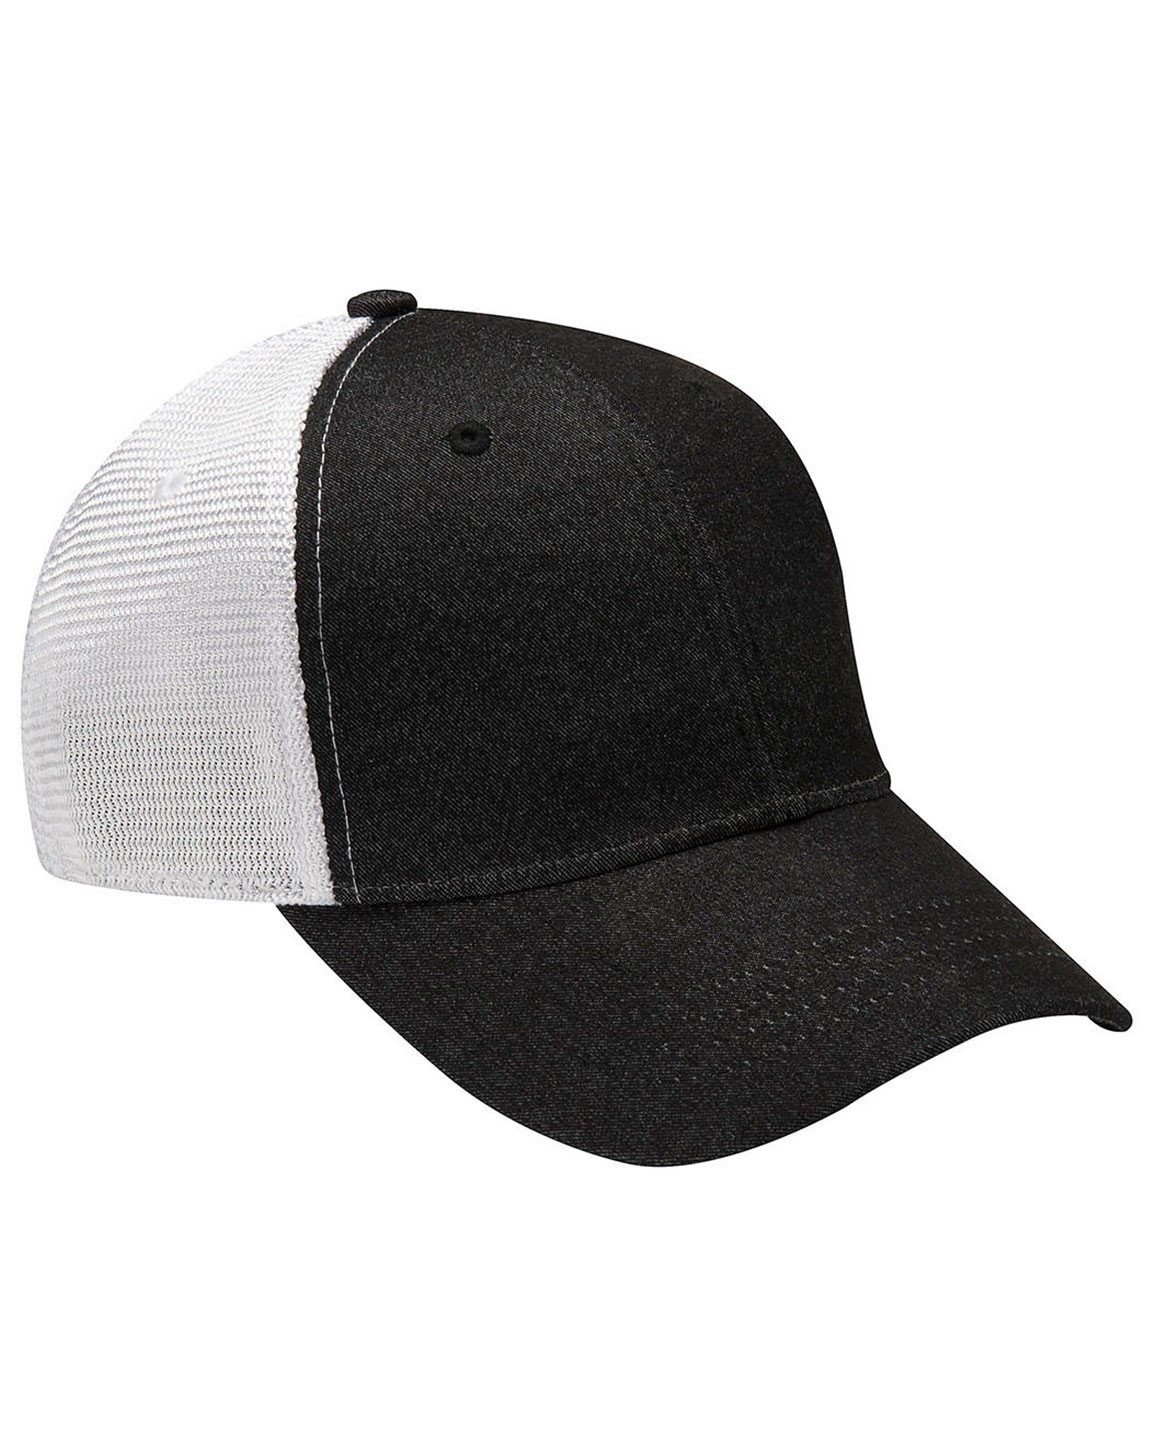 Adams KN102 Mens Knockout Cap